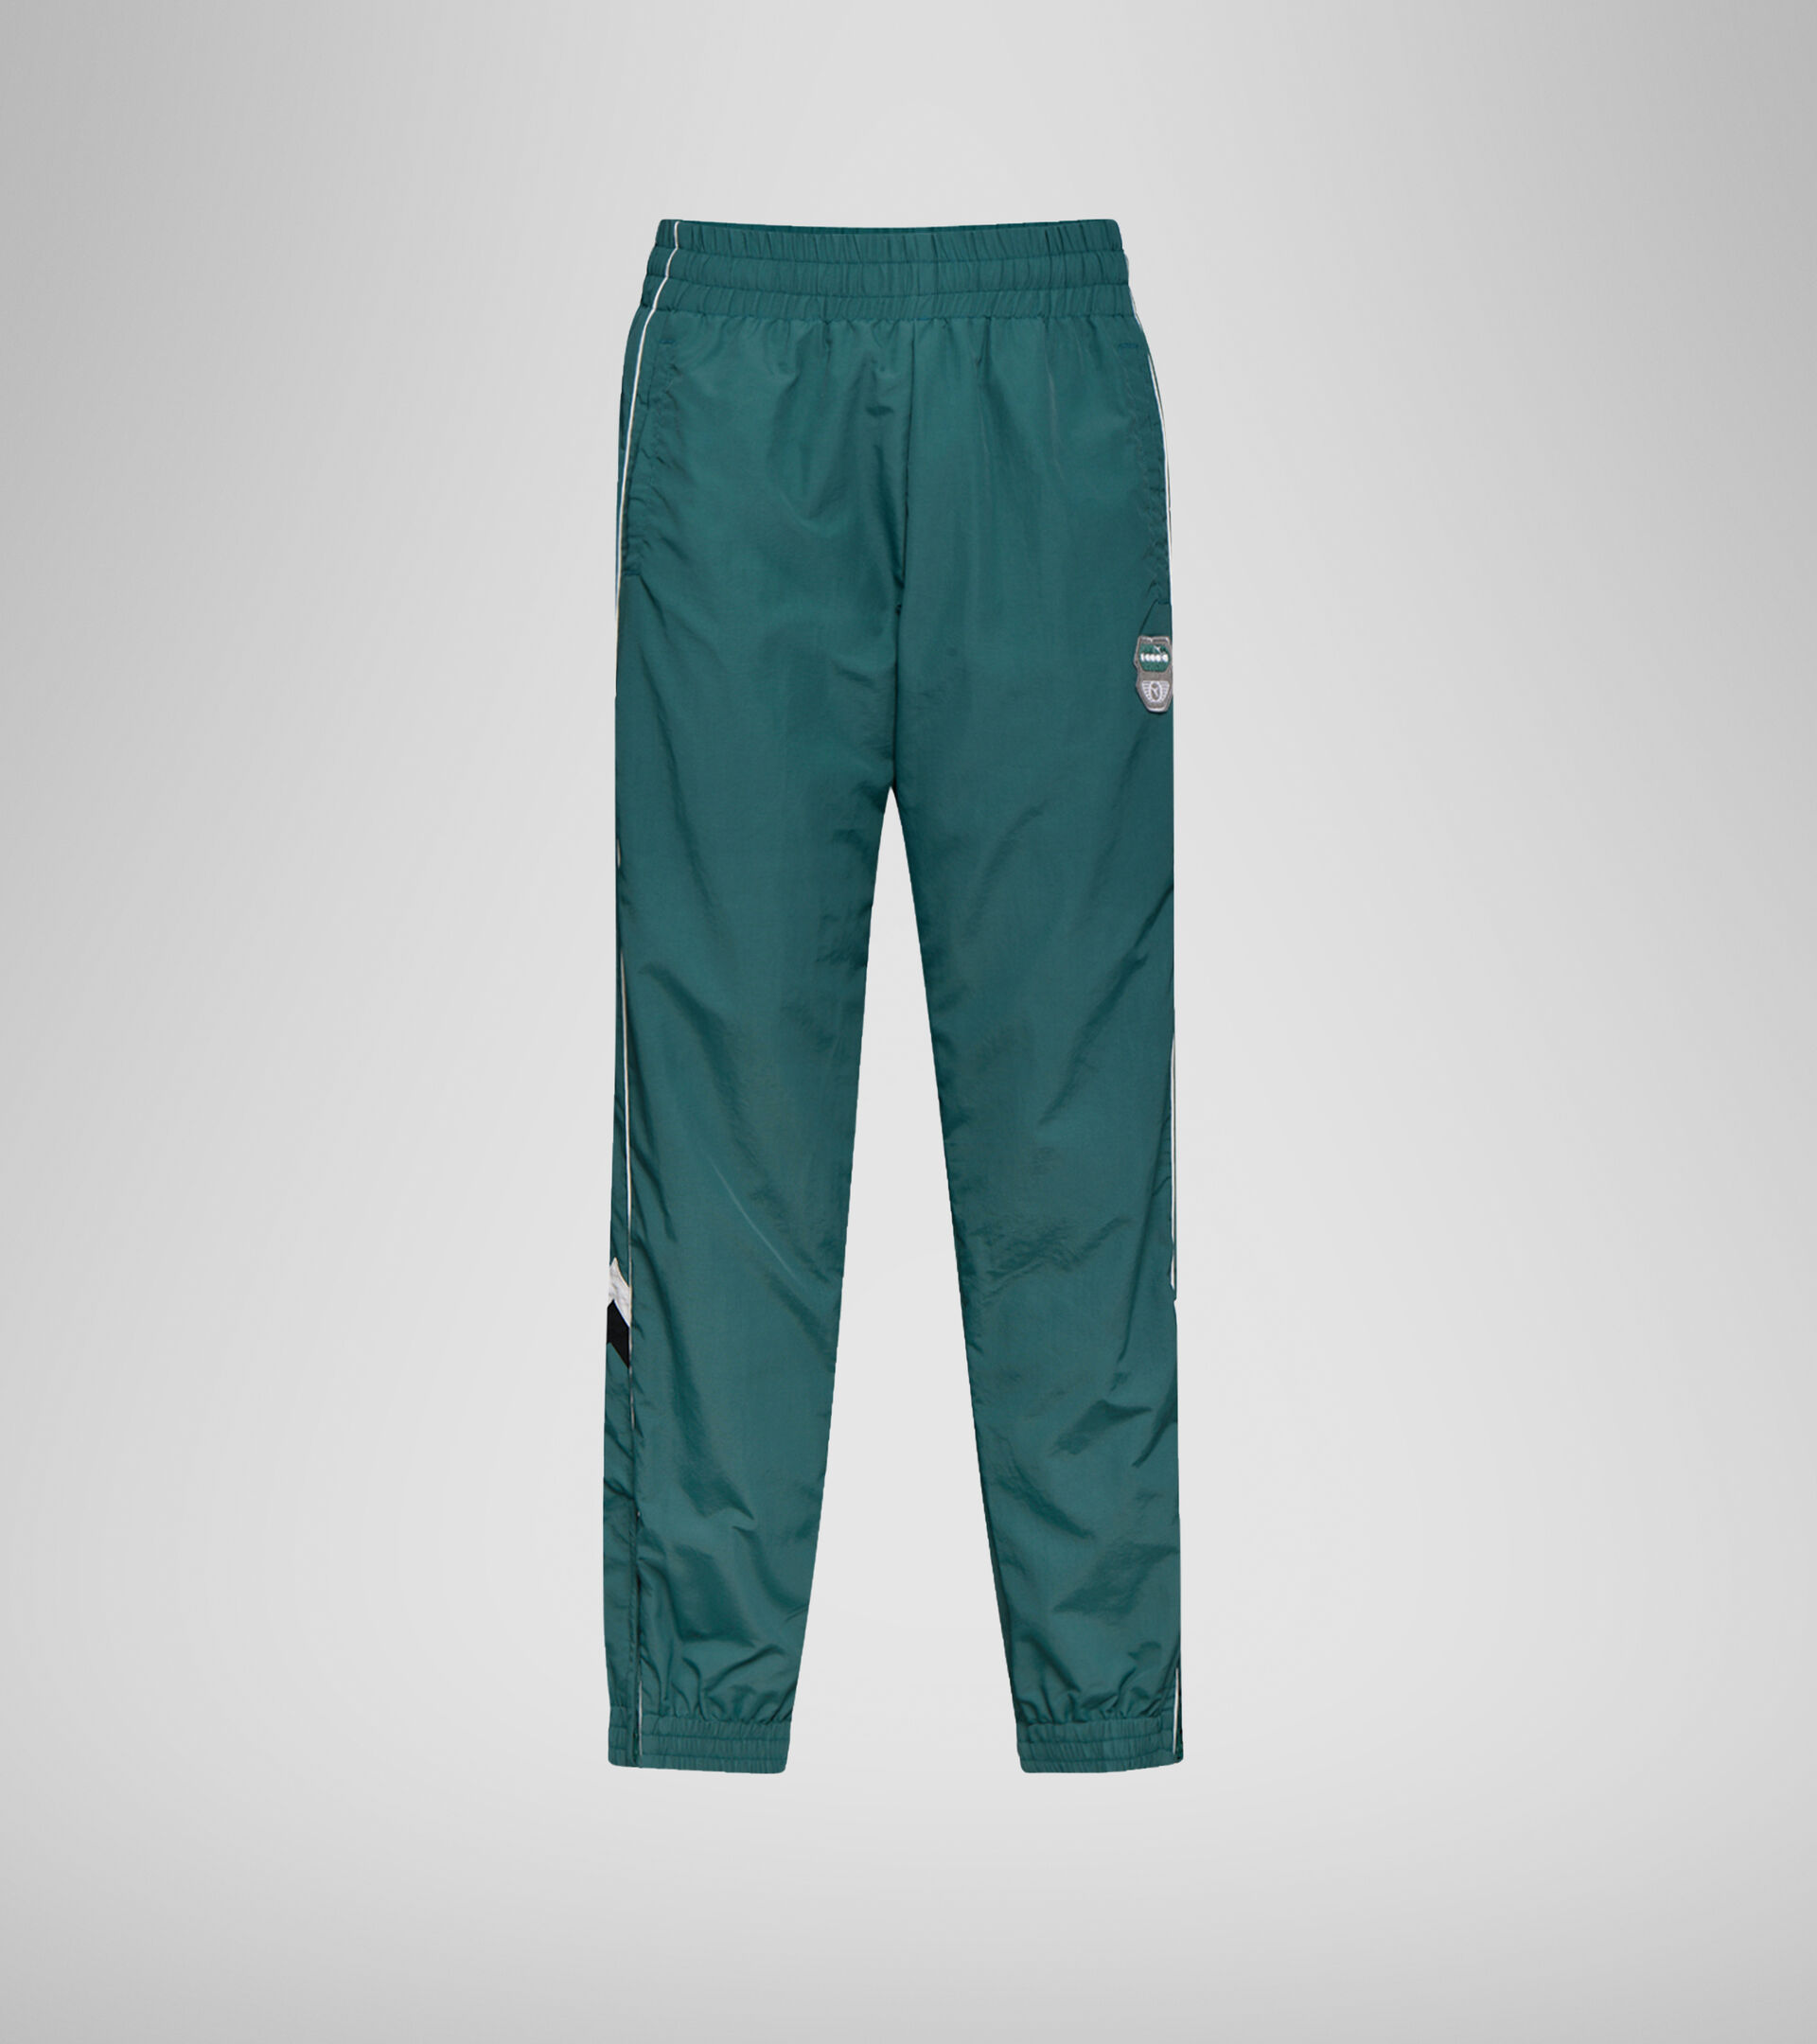 Sports trousers - Unisex TRACK PANT ATLETICO GREEN IVY - Diadora